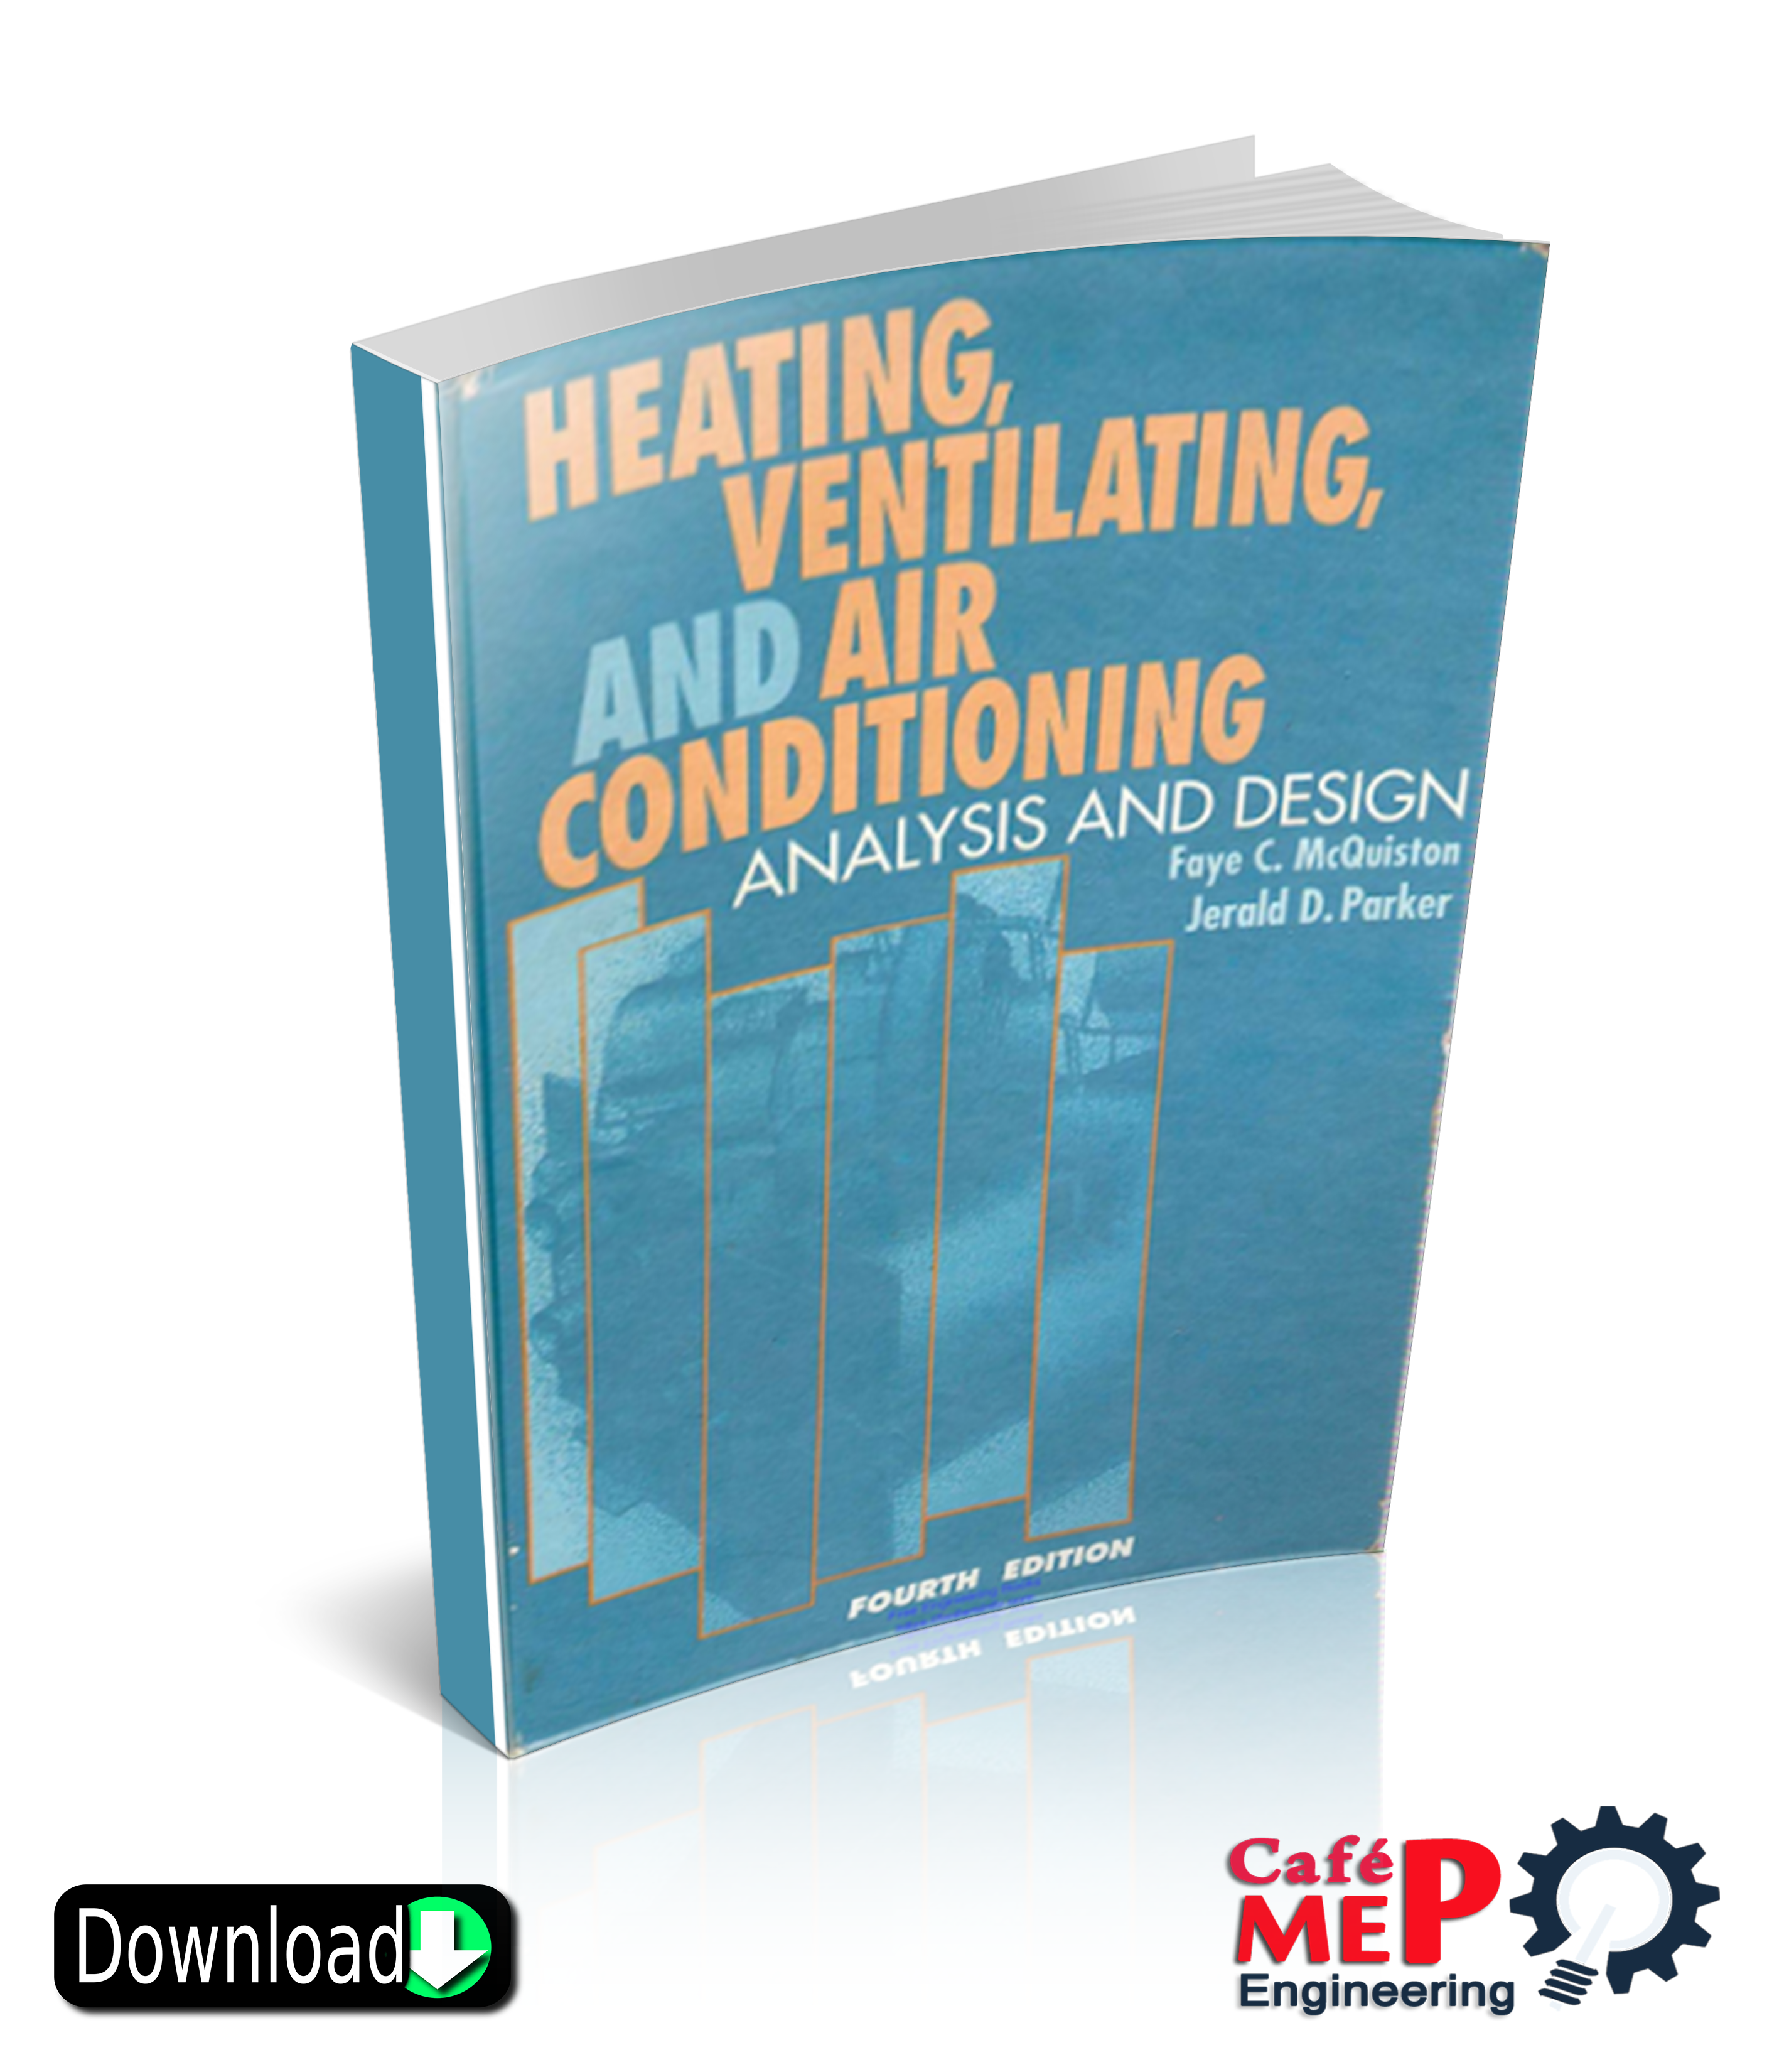 Heating Ventilating And Air Conditioning Analysis And Design Analysis And Design Fourth Edition Ventilation Conditioner Heat